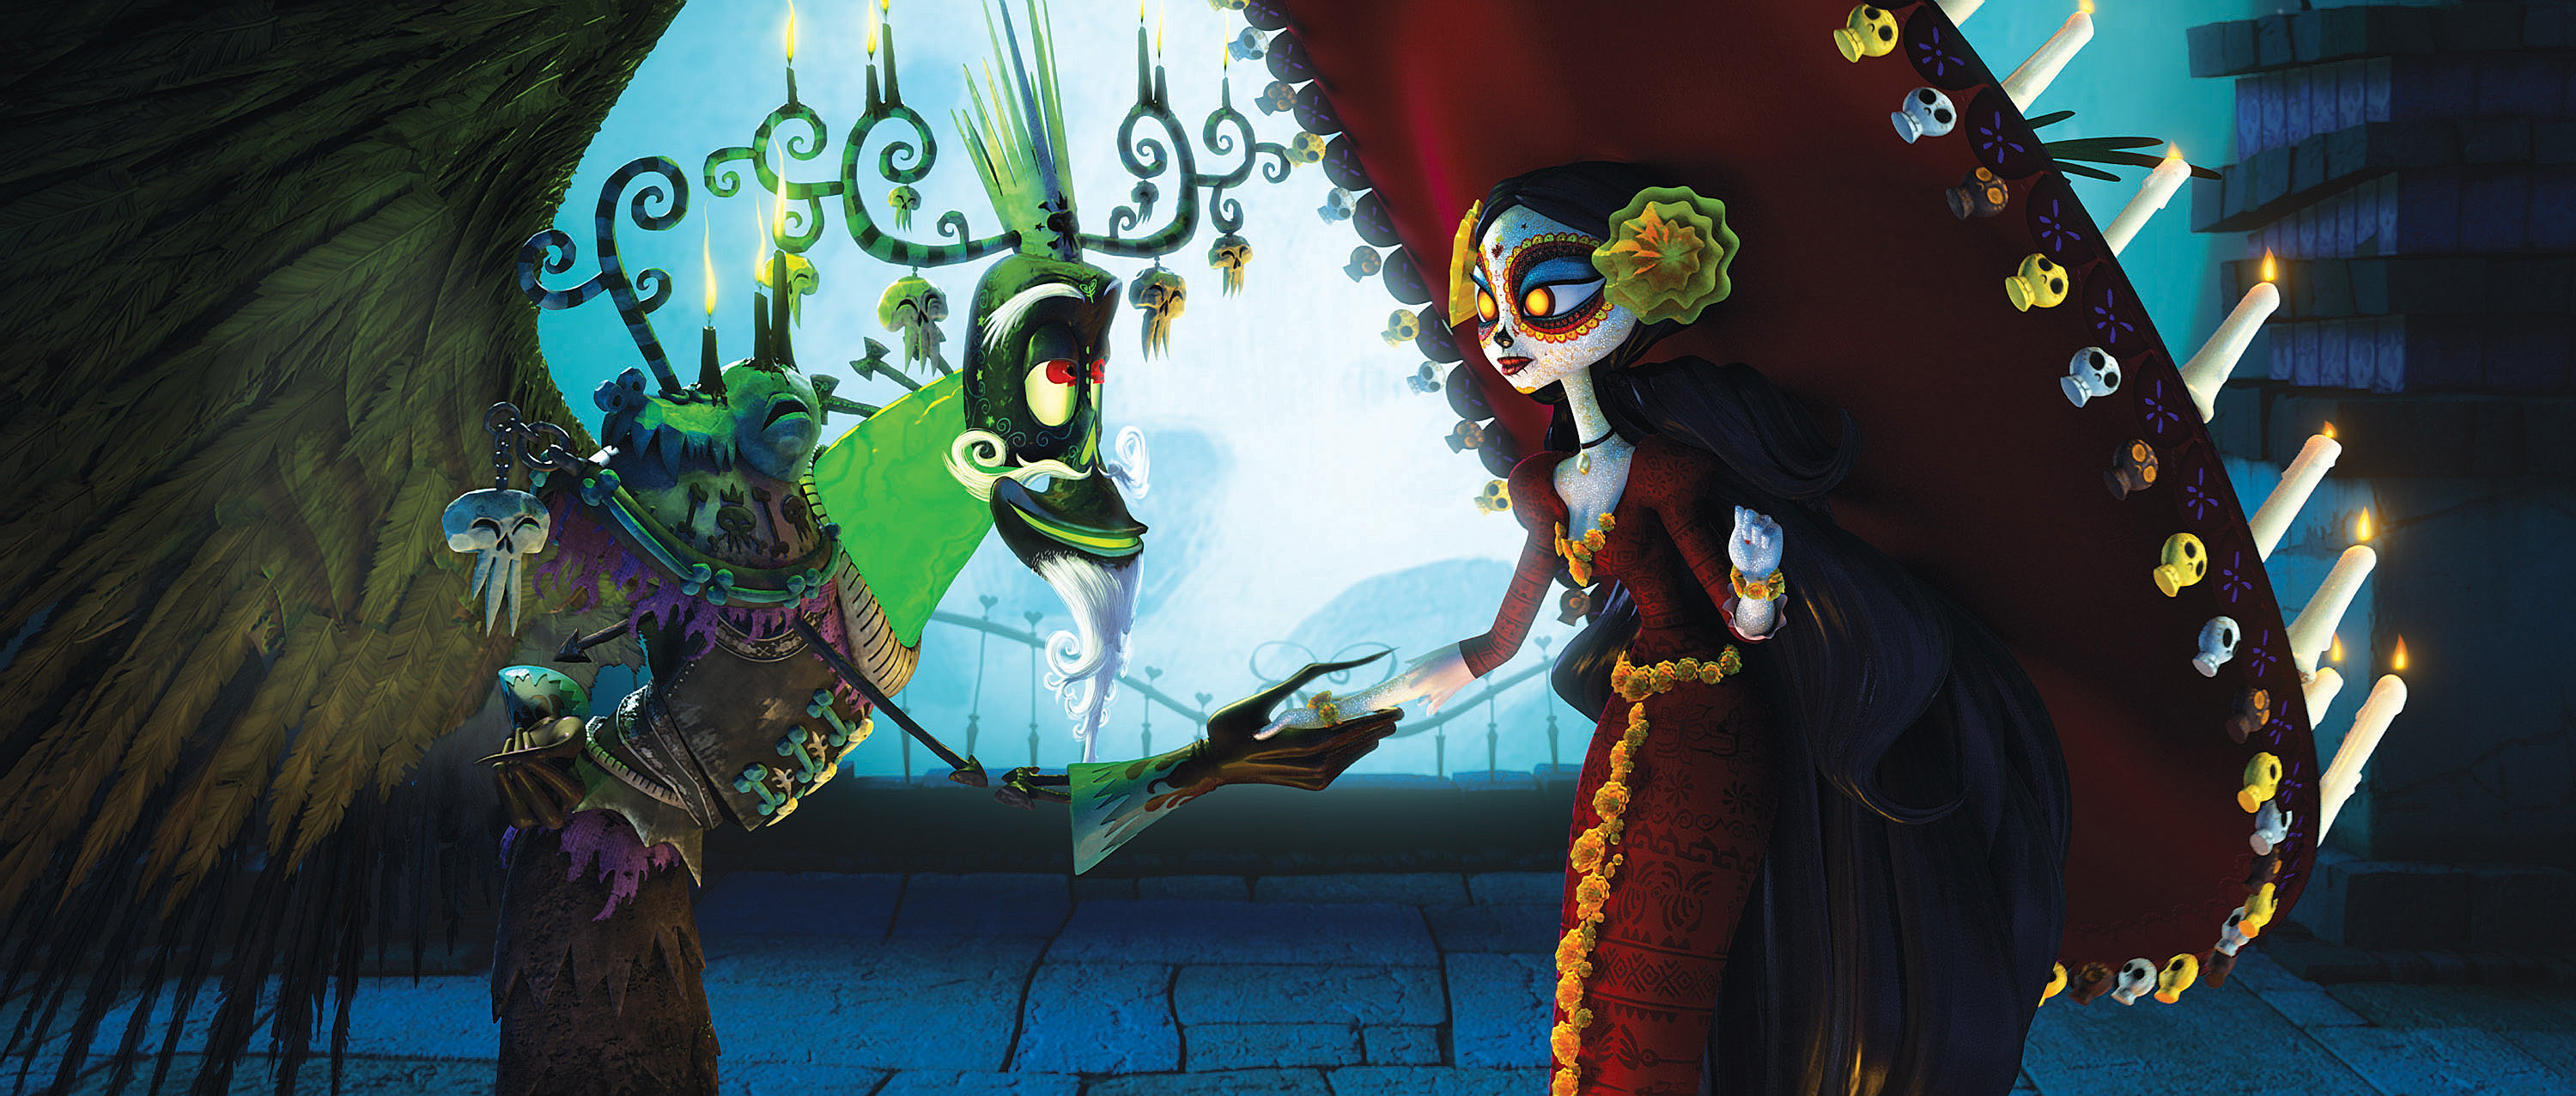 The Book Of Life Images More Book Of Life HD Wallpaper And